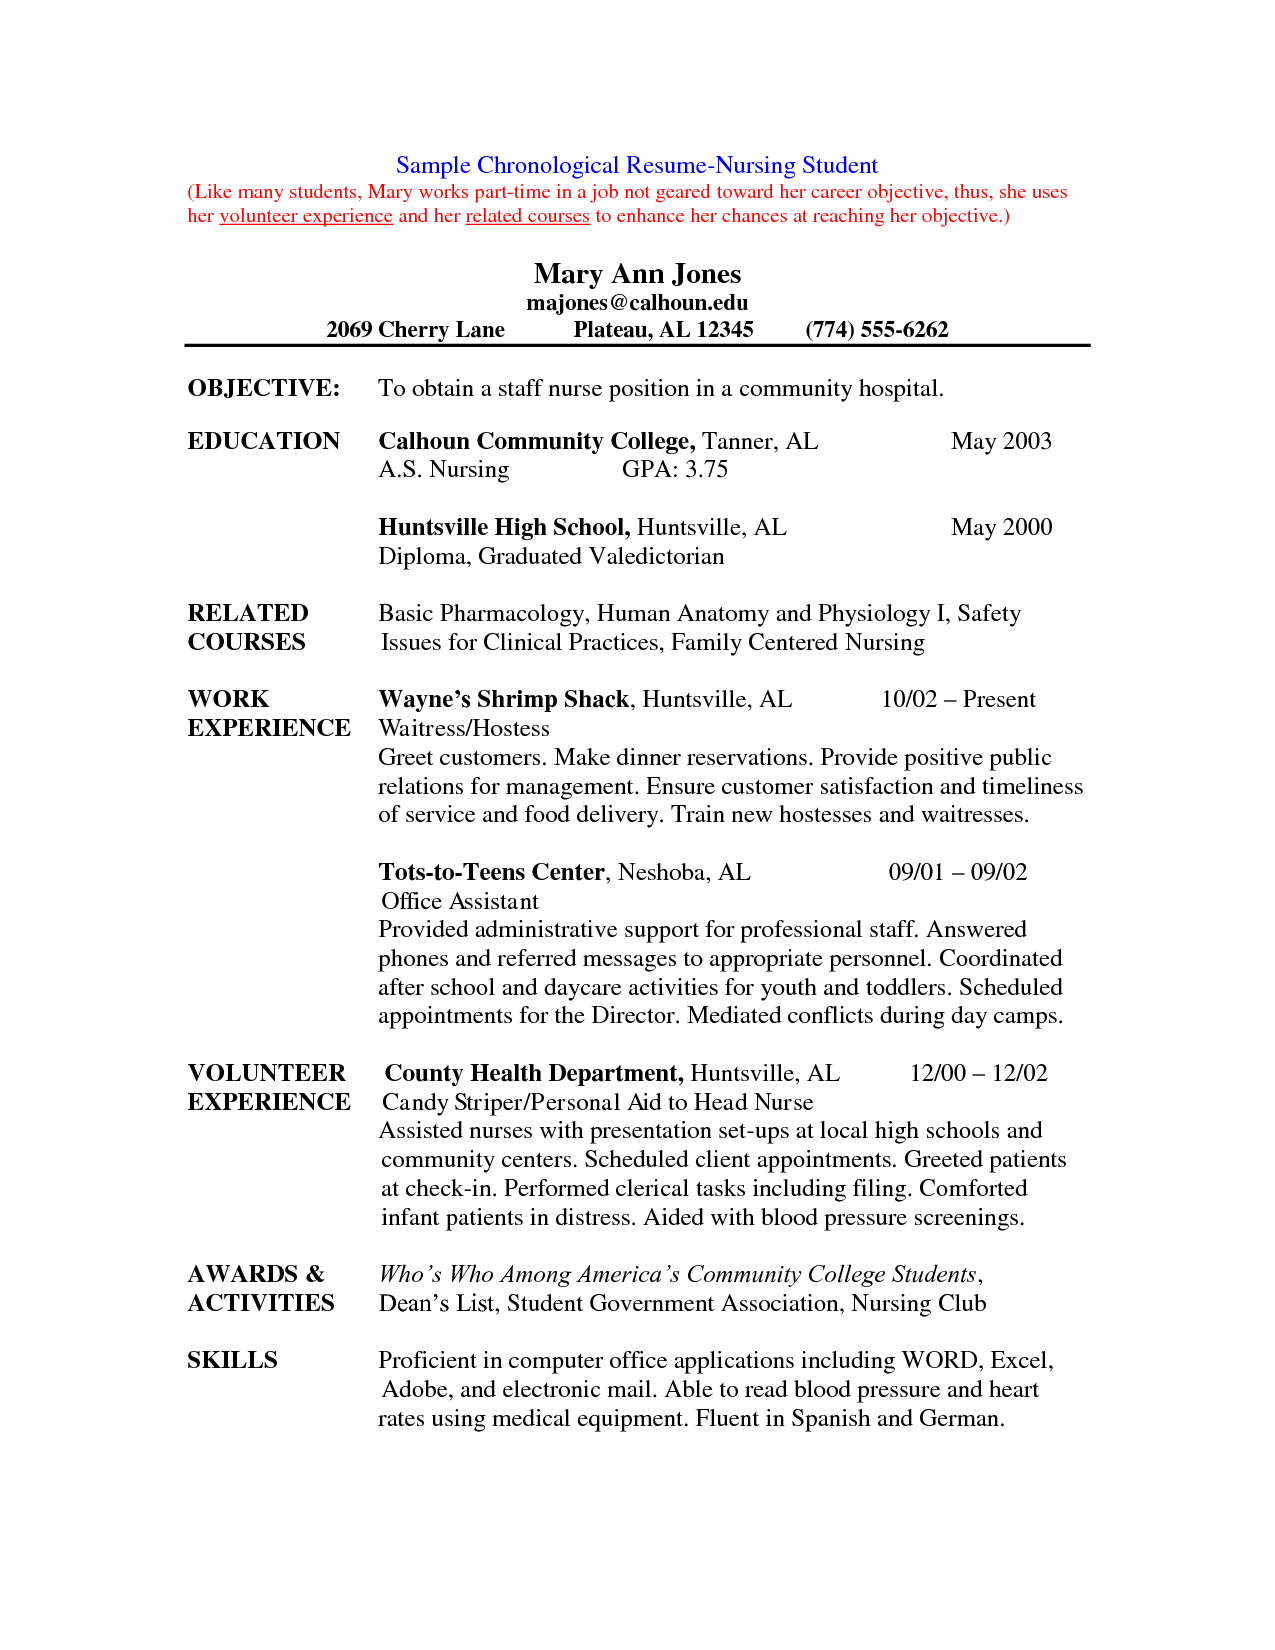 Sample Student Resume Nursing Student Resume Template Hdresume Templates Cover Letter